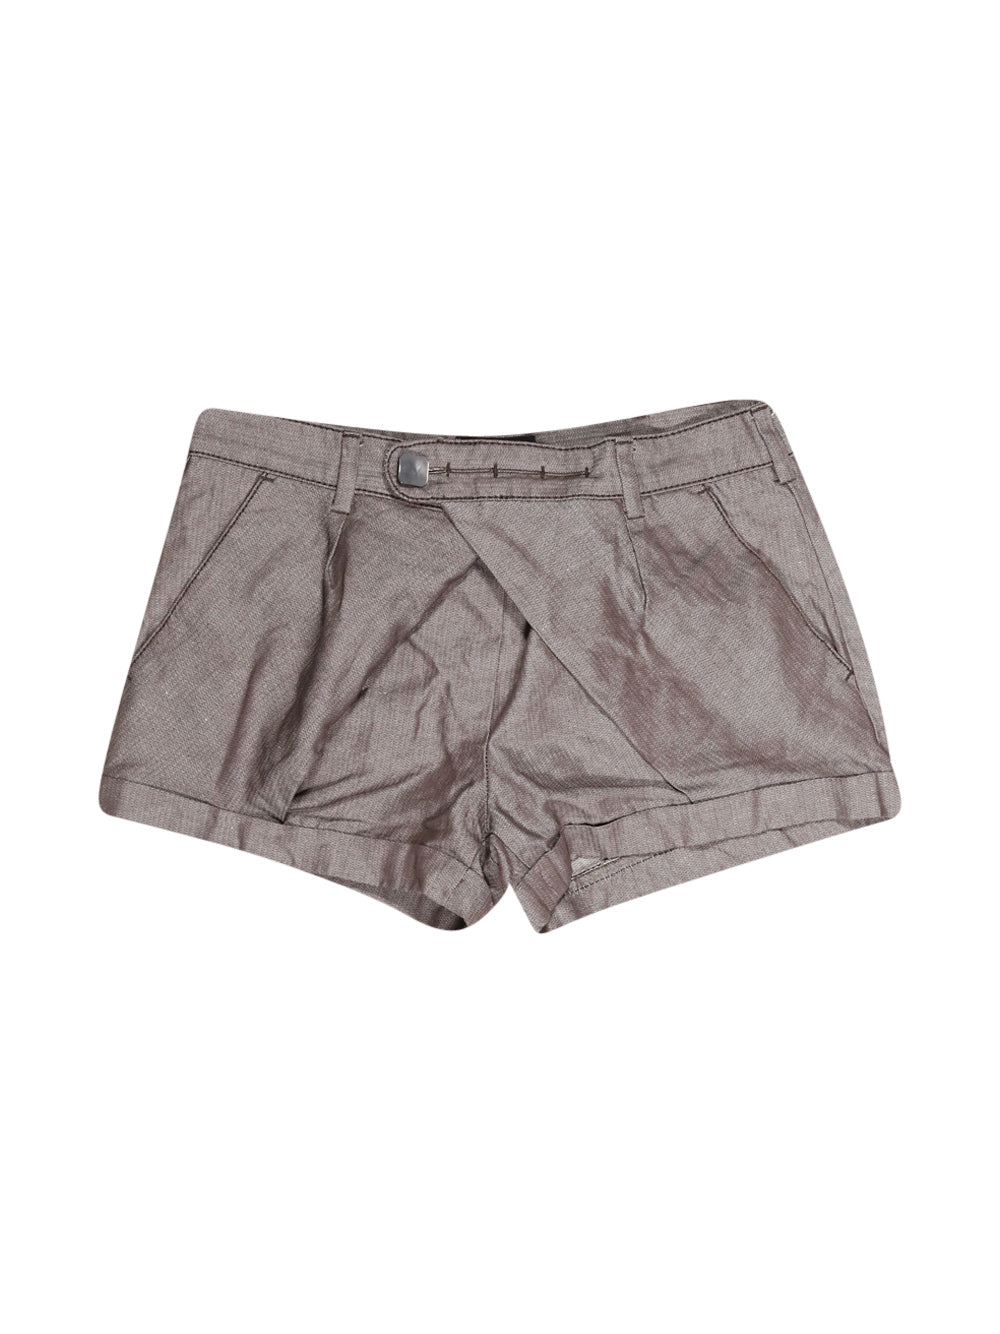 Front photo of Preloved Sisley Grey Woman's shorts - size 6/XS